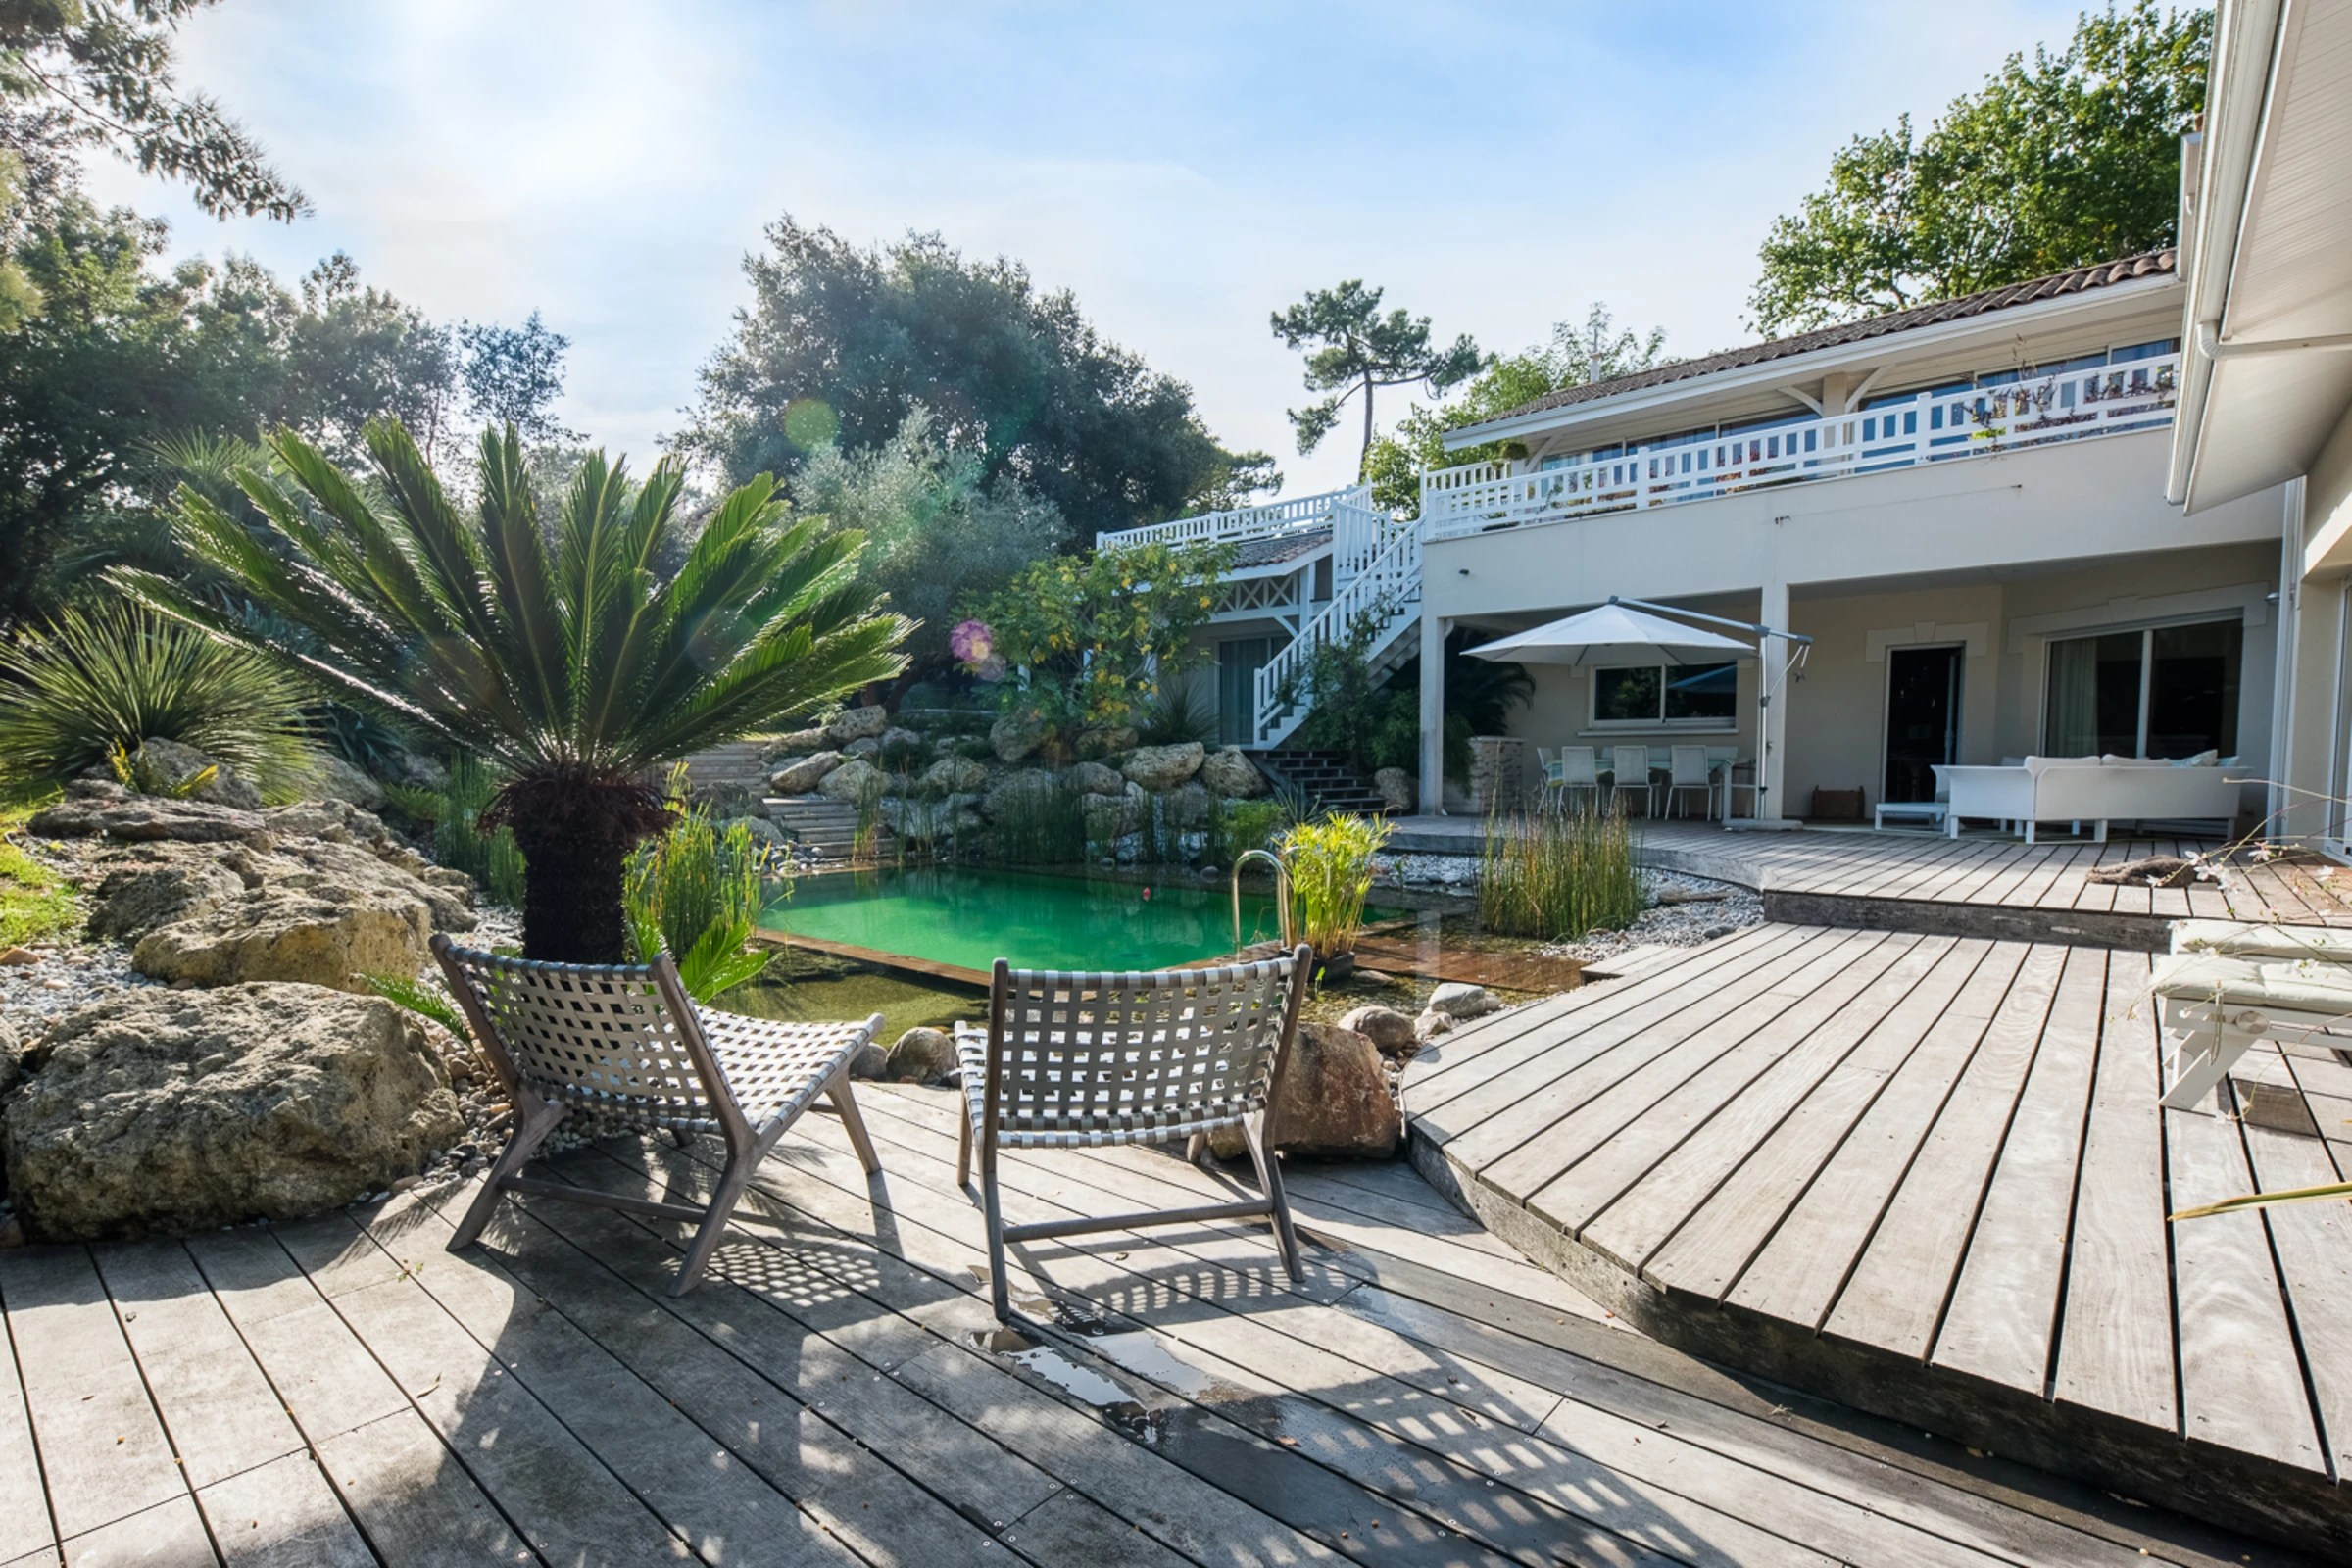 Le Mouleau Stunning Family Villa With Swimming Pool In The Heart Of Le